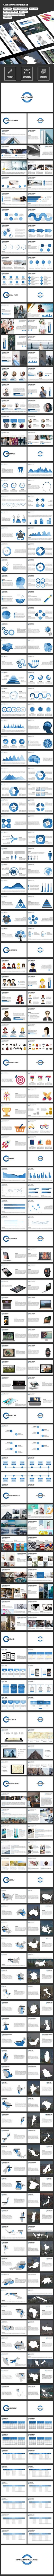 Awesome Business - PowerPoint Presentation - #Business #PowerPoint Templates Download here: https://graphicriver.net/item/awesome-business-powerpoint-presentation/19512241?ref=alena994